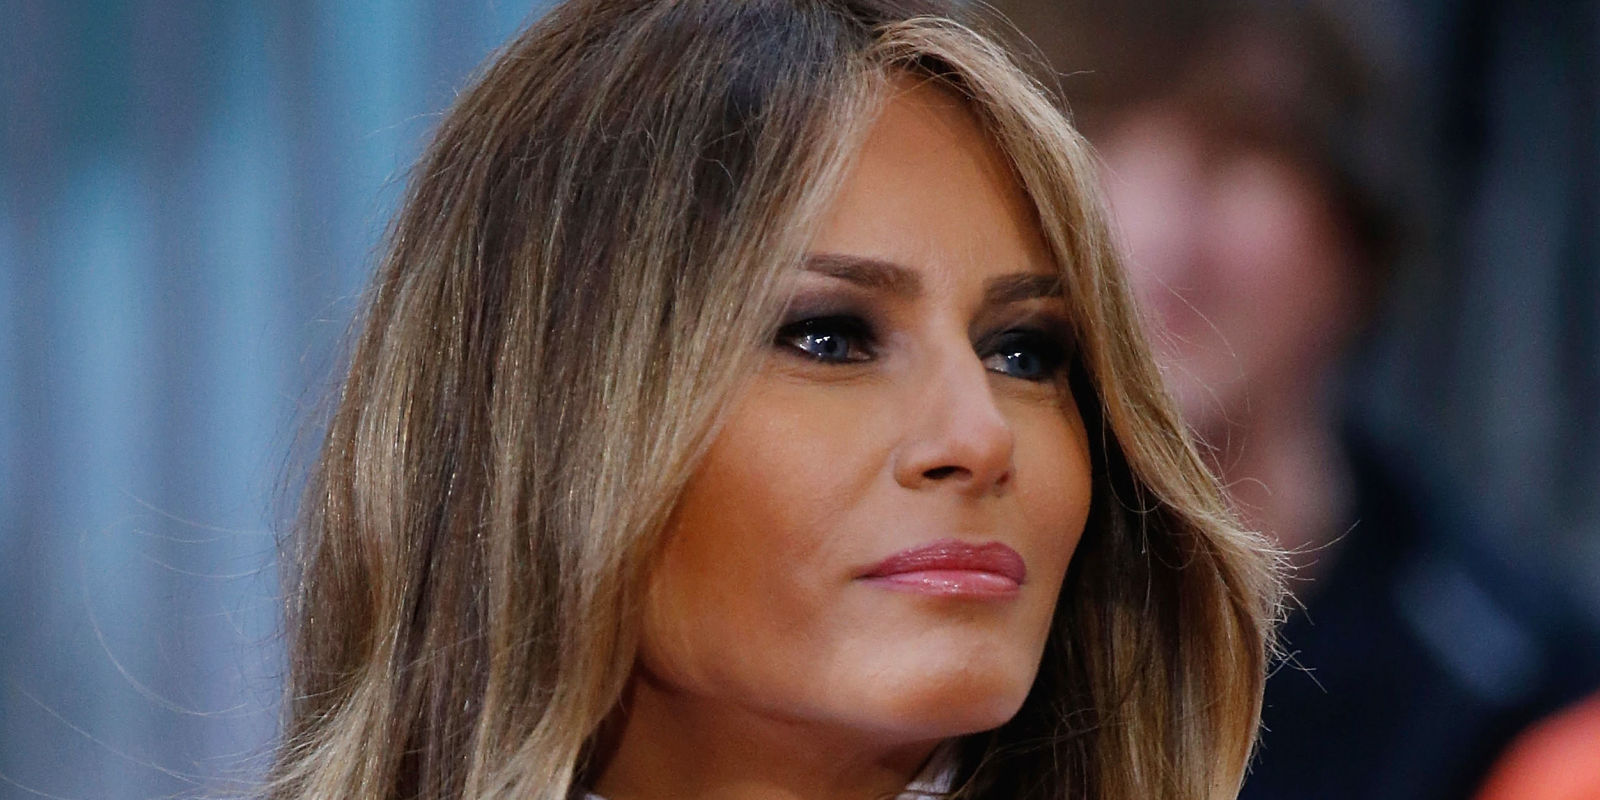 A Sex Columnist Just Called Melania 'Ugly on the Inside'